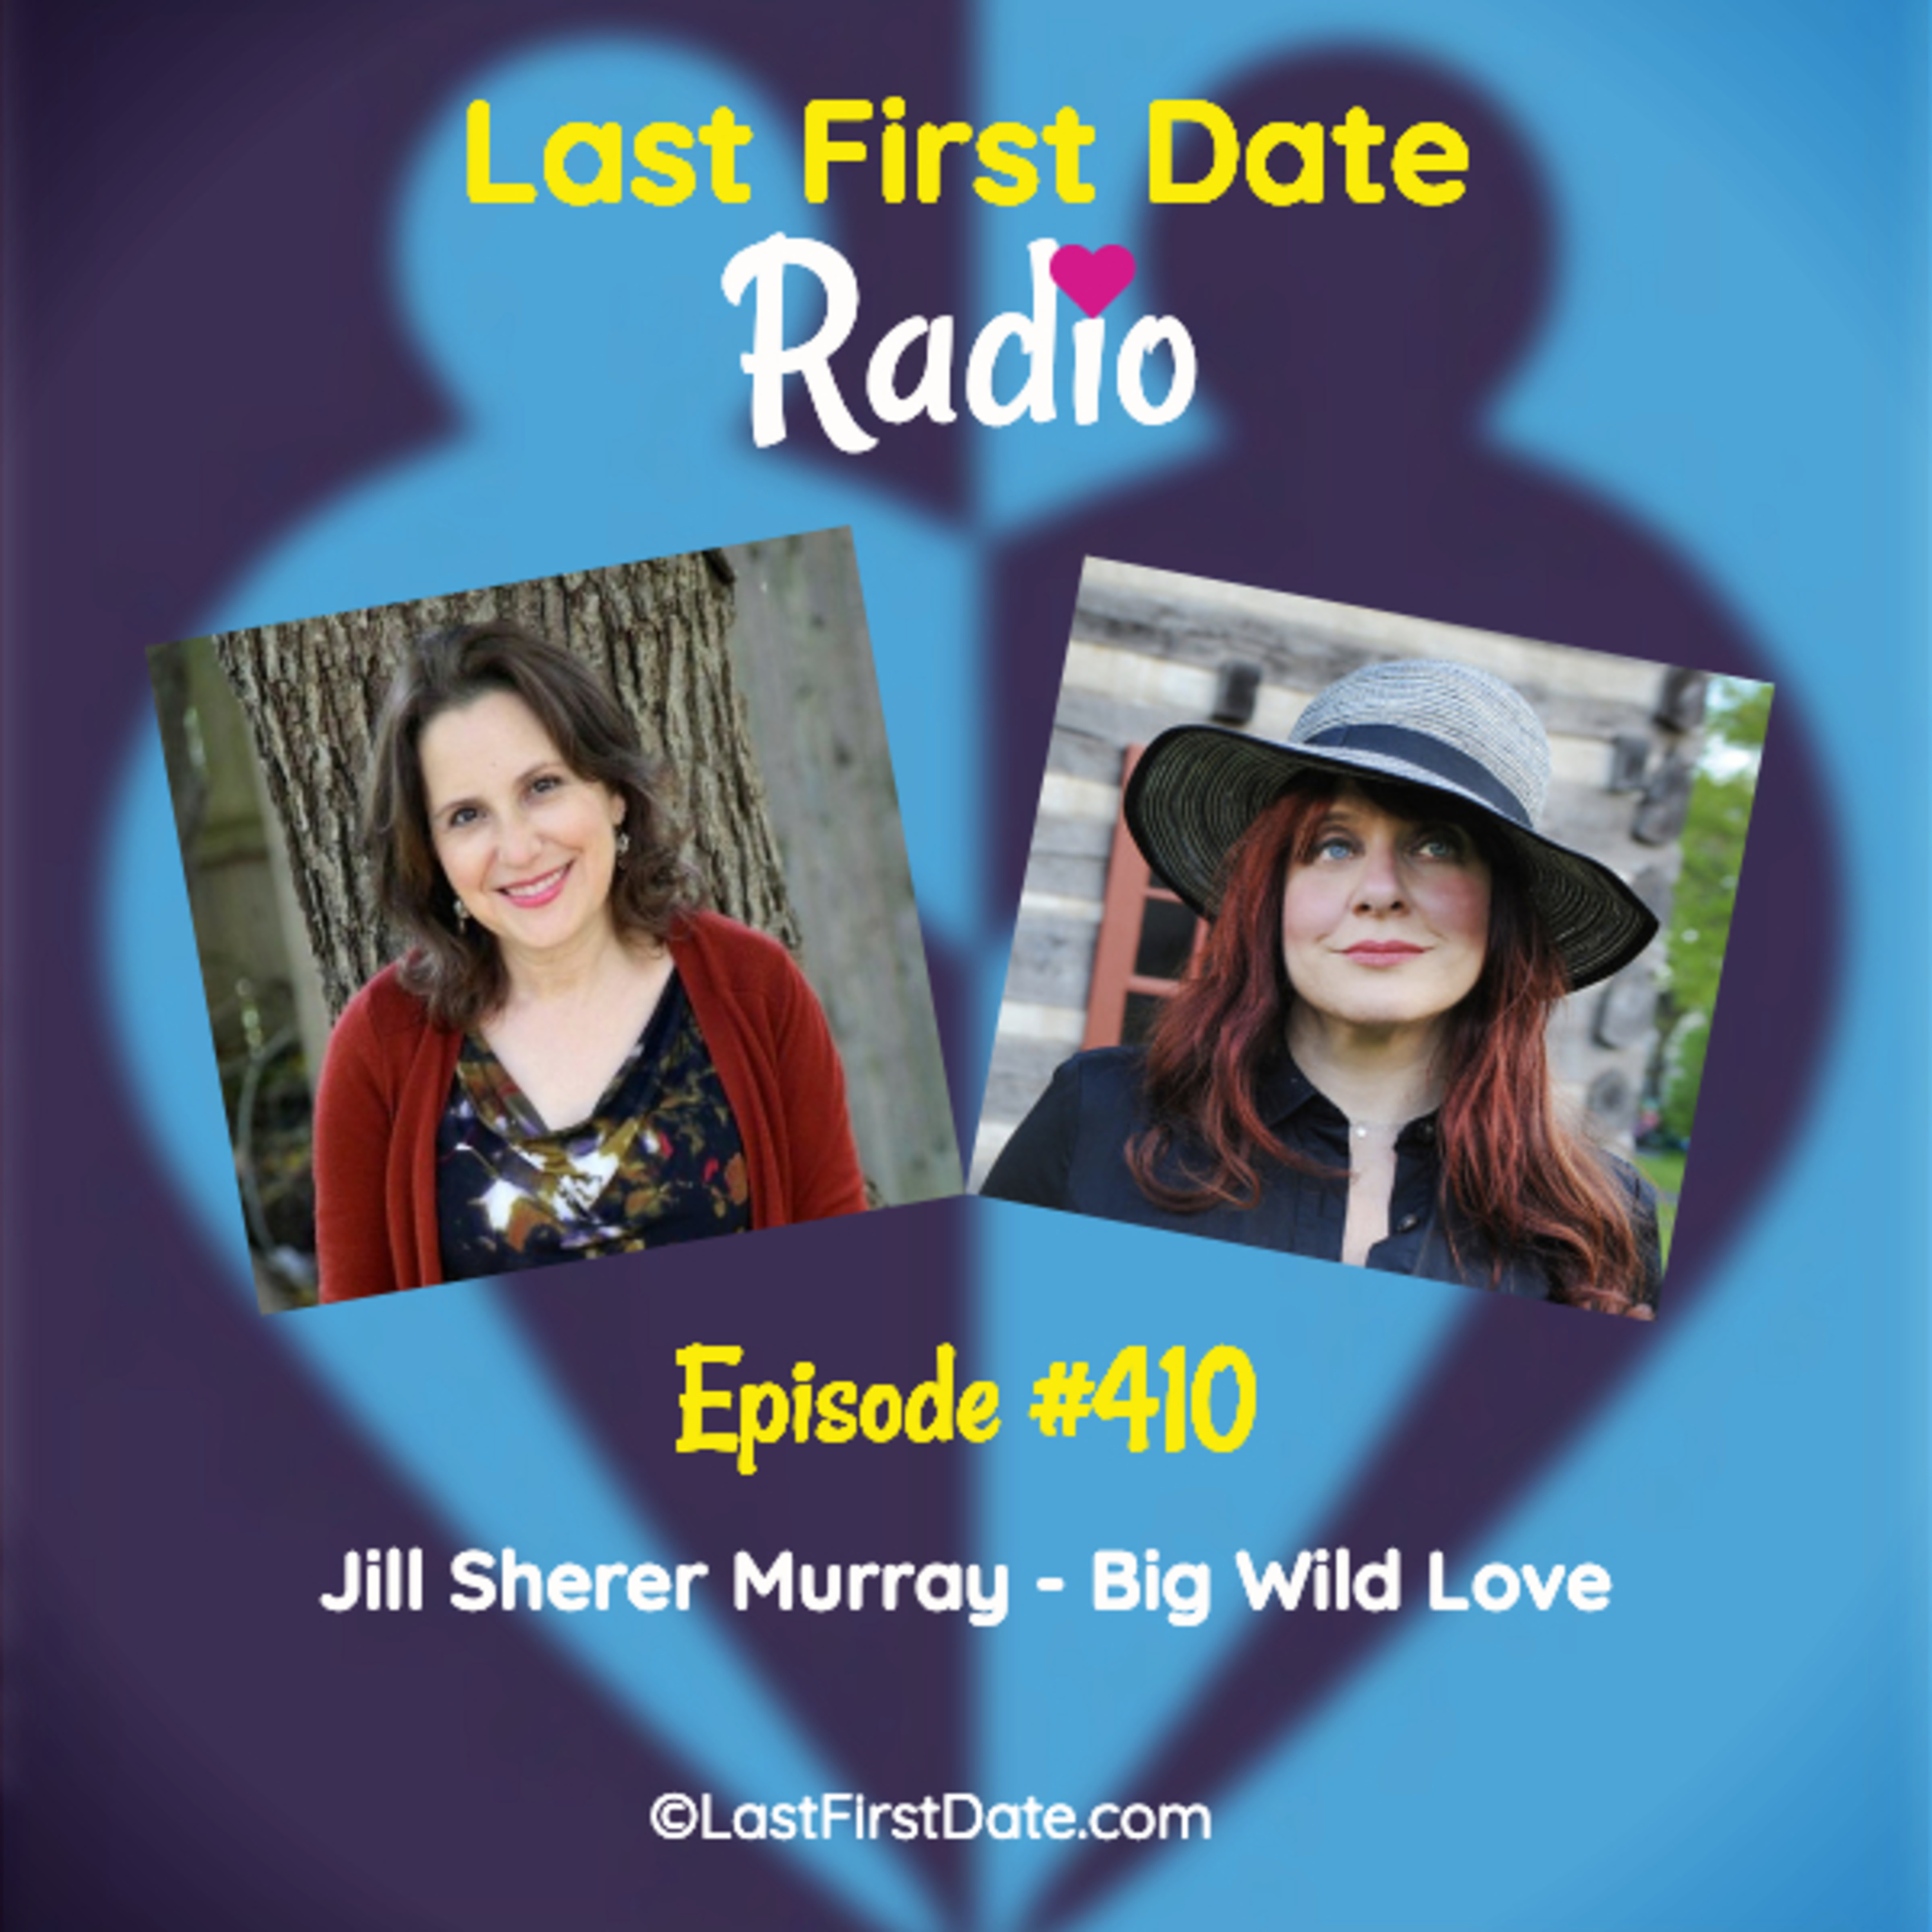 Last First Date Radio - EP 410: Jill Sherer Murray - How to Attract Big Wild Love